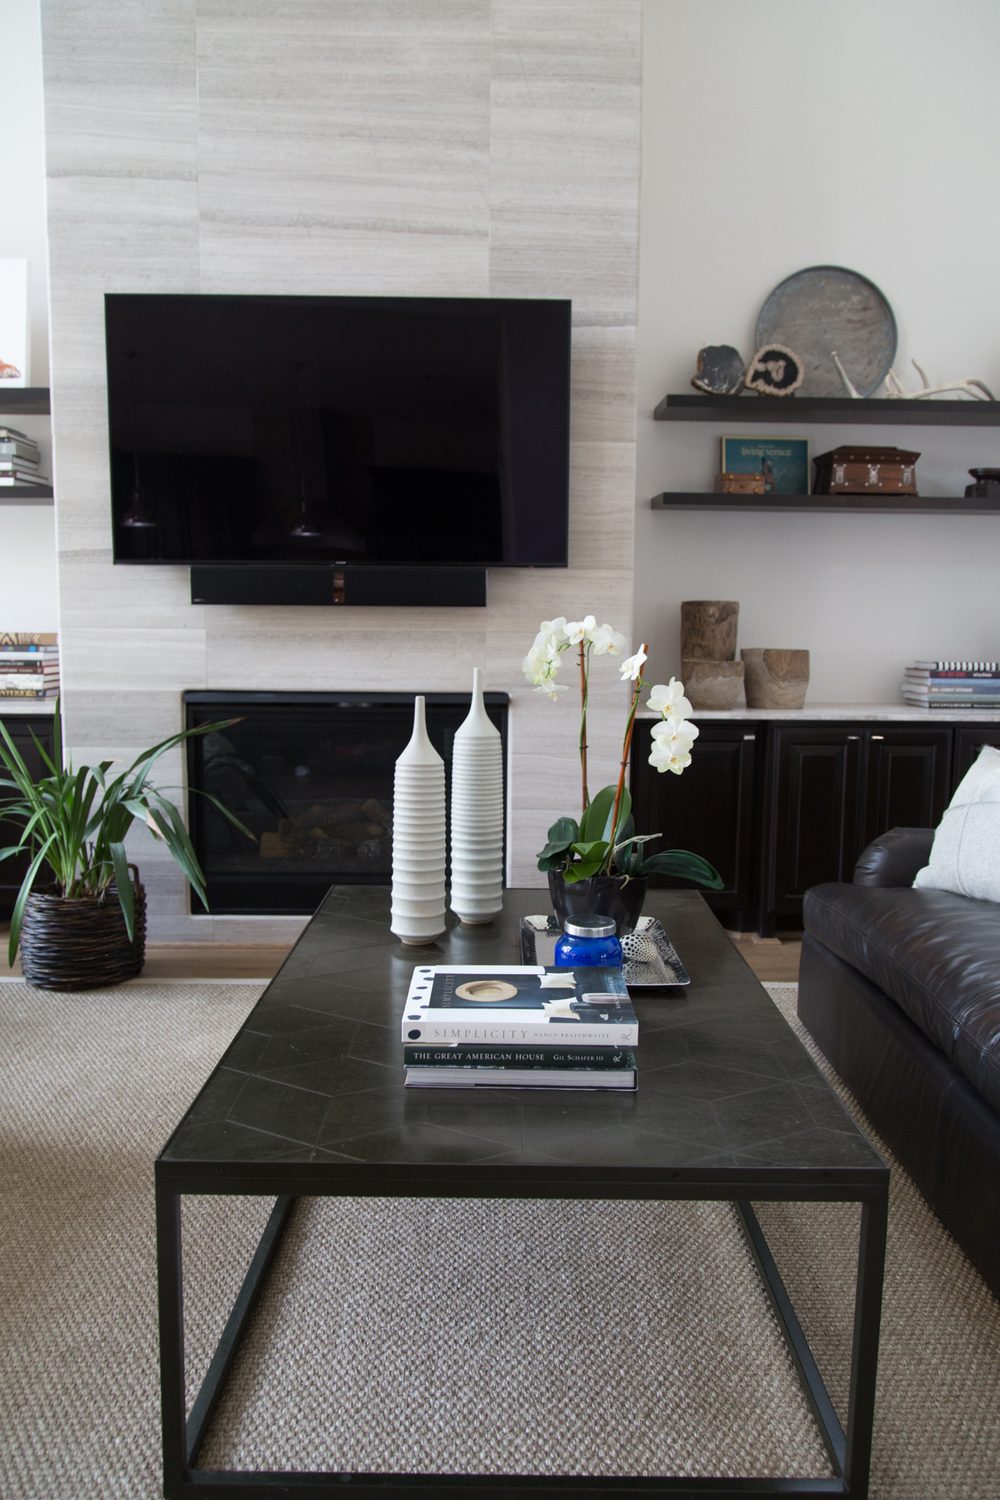 living room remodel; coffee table; decor; television; shelving | Interior Designer: Carla Aston / Photographer: Tori Aston